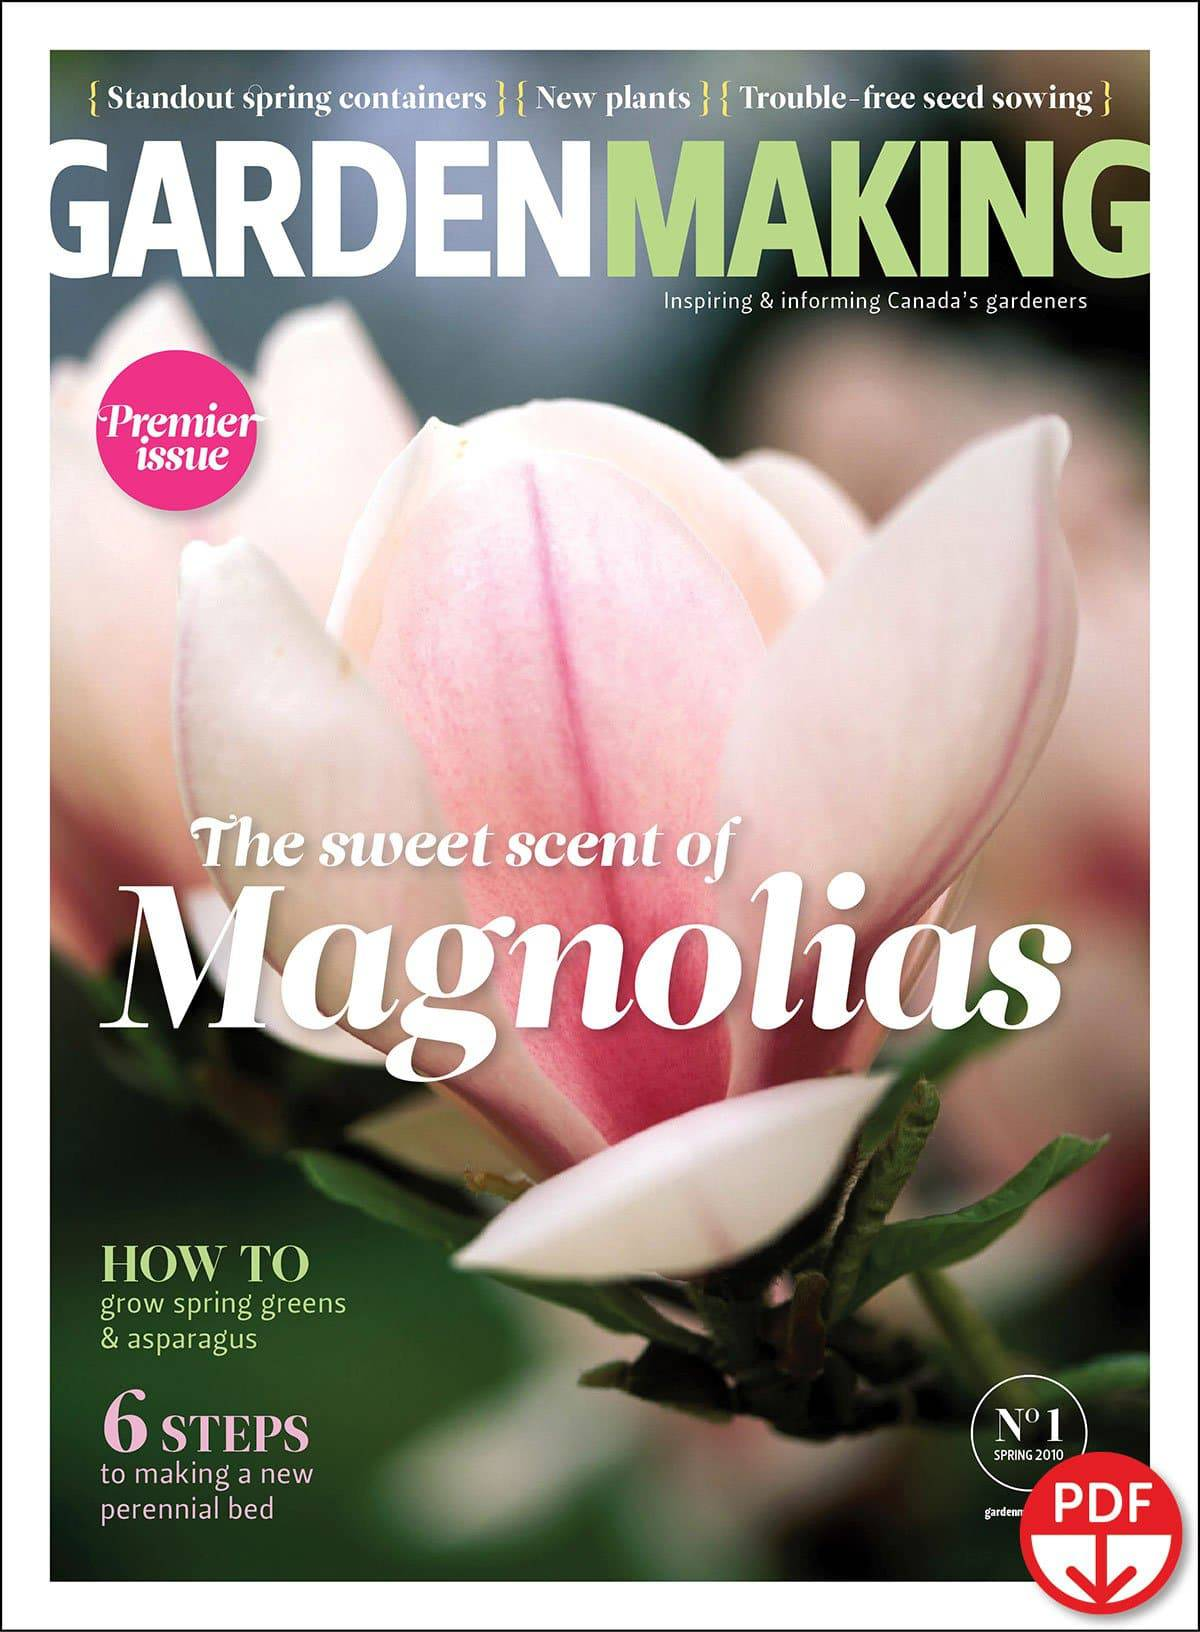 Garden Making issue 01